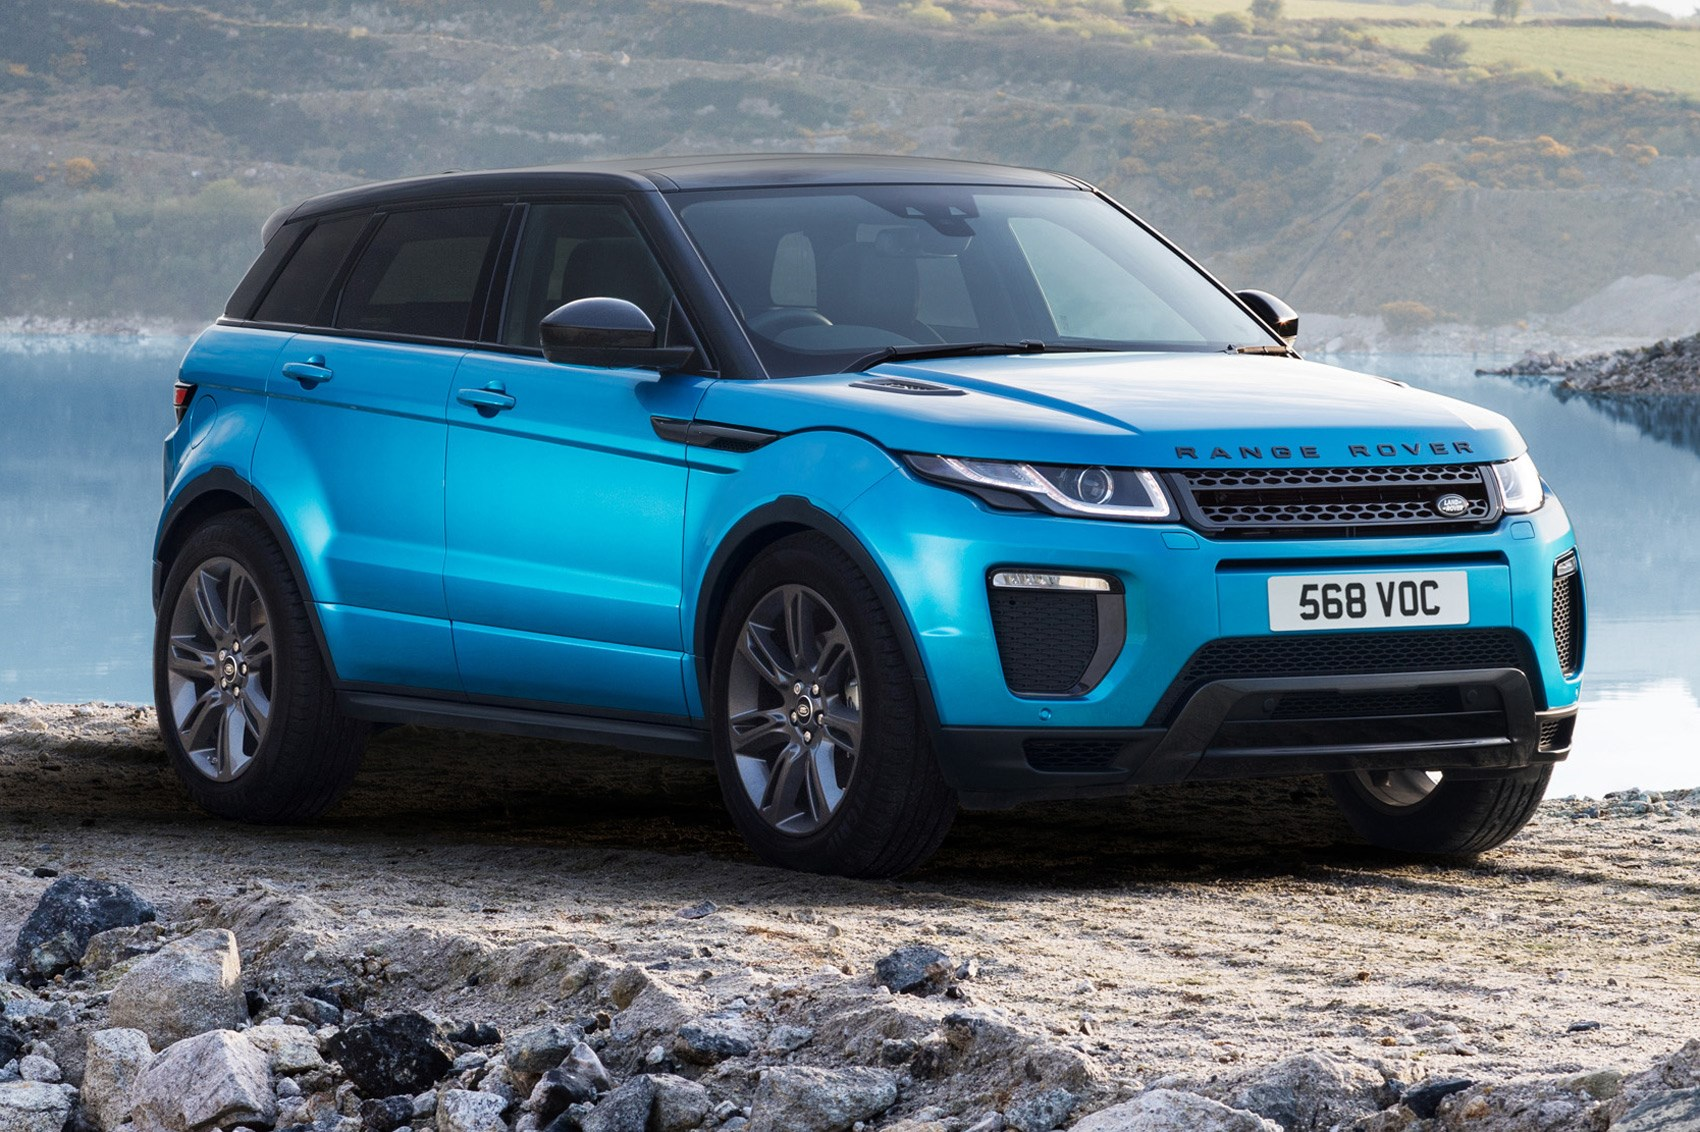 volkswagen jeep 2018 with Range Rover Evoque Landmark 2017 Pictures And Details on Lamborghini urus 2018 4k 3 Wallpapers additionally Startovali Prodazhi Hyundai Creta Anniversary Edition besides Preview 2018 Nissan Kicks also 2017 Bmw X1 Review likewise Land Rover Adds New Engines To Discovery Sport And Evoque.